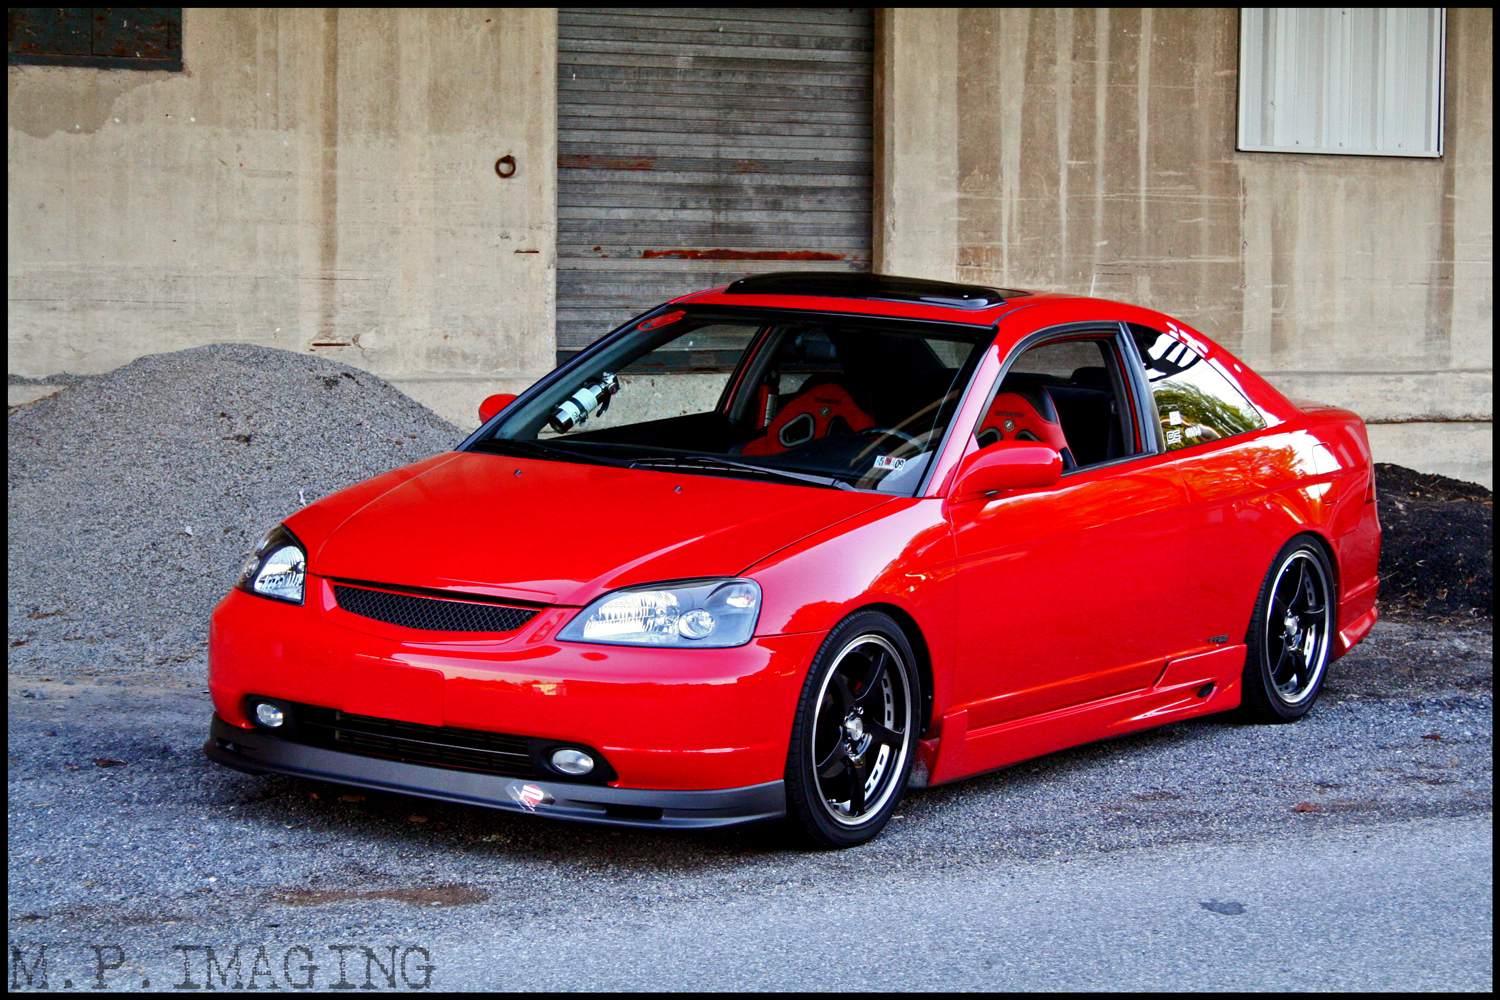 2001 2002 2003 Honda Civic 7th Generation Em es Jdm Fog Lights 5 Free Download Image Of